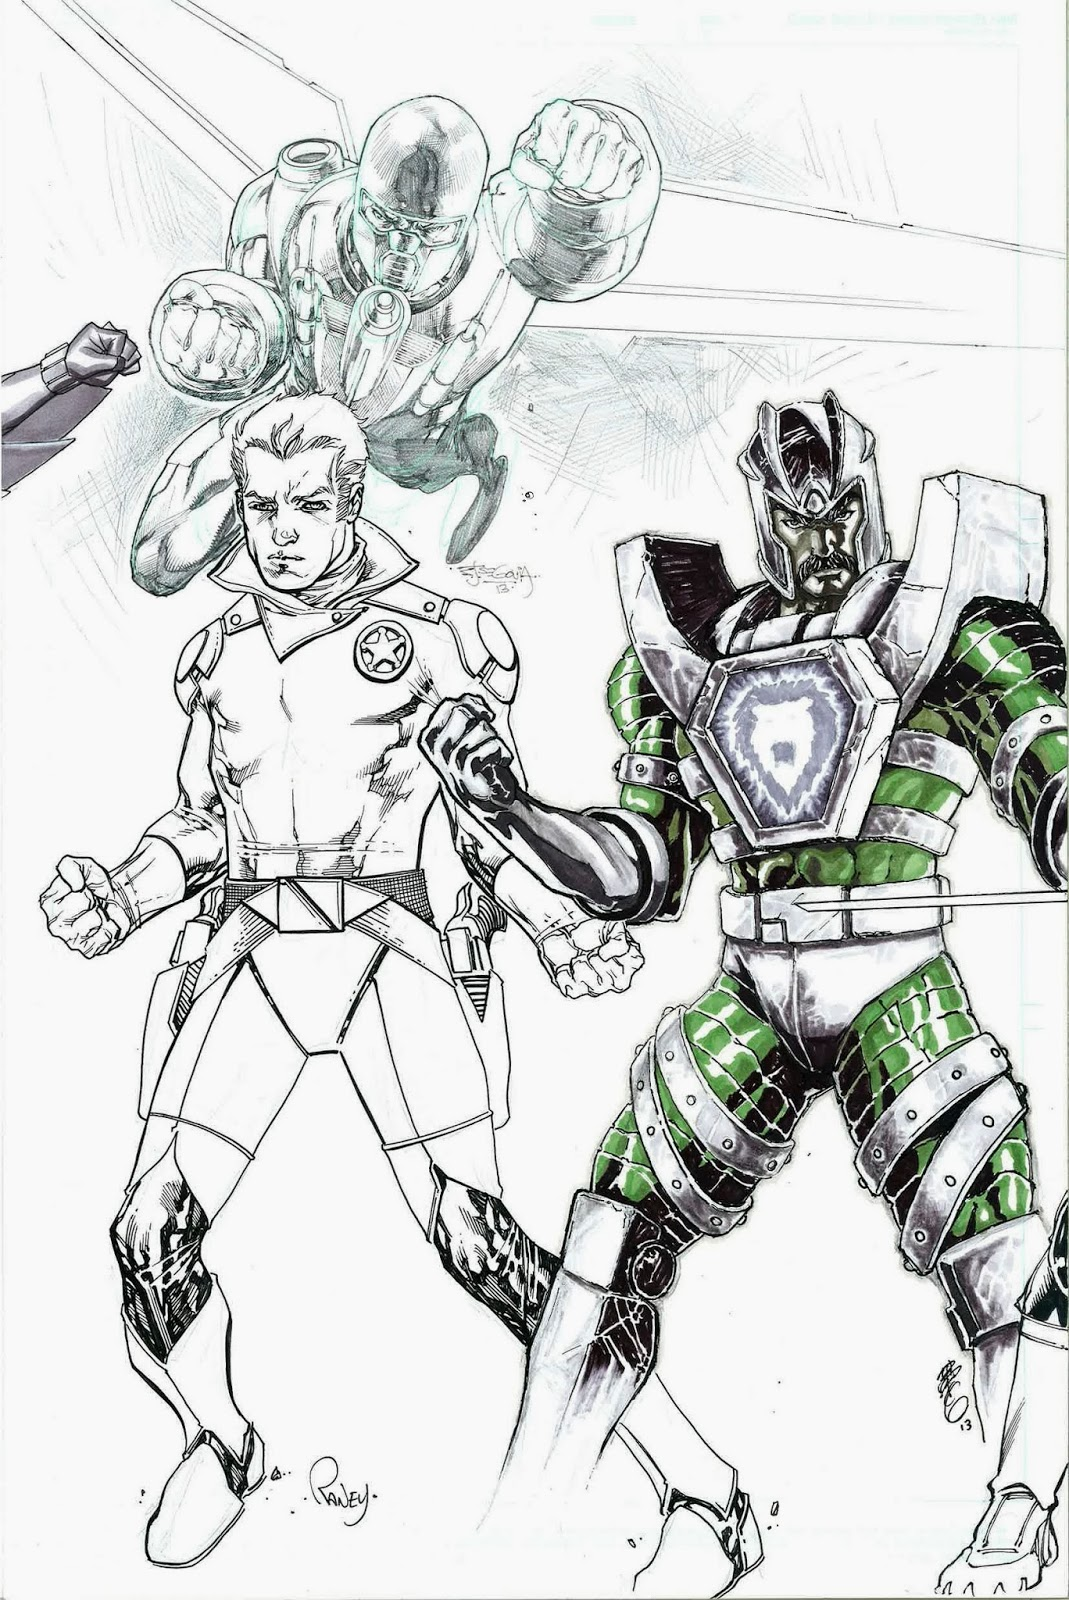 Ace McCloud (from Centurions), Shane Gooseman (from The Adventures of the Galaxy Rangers), and Leoric (from Visionaries: Knights of the Magical Light)